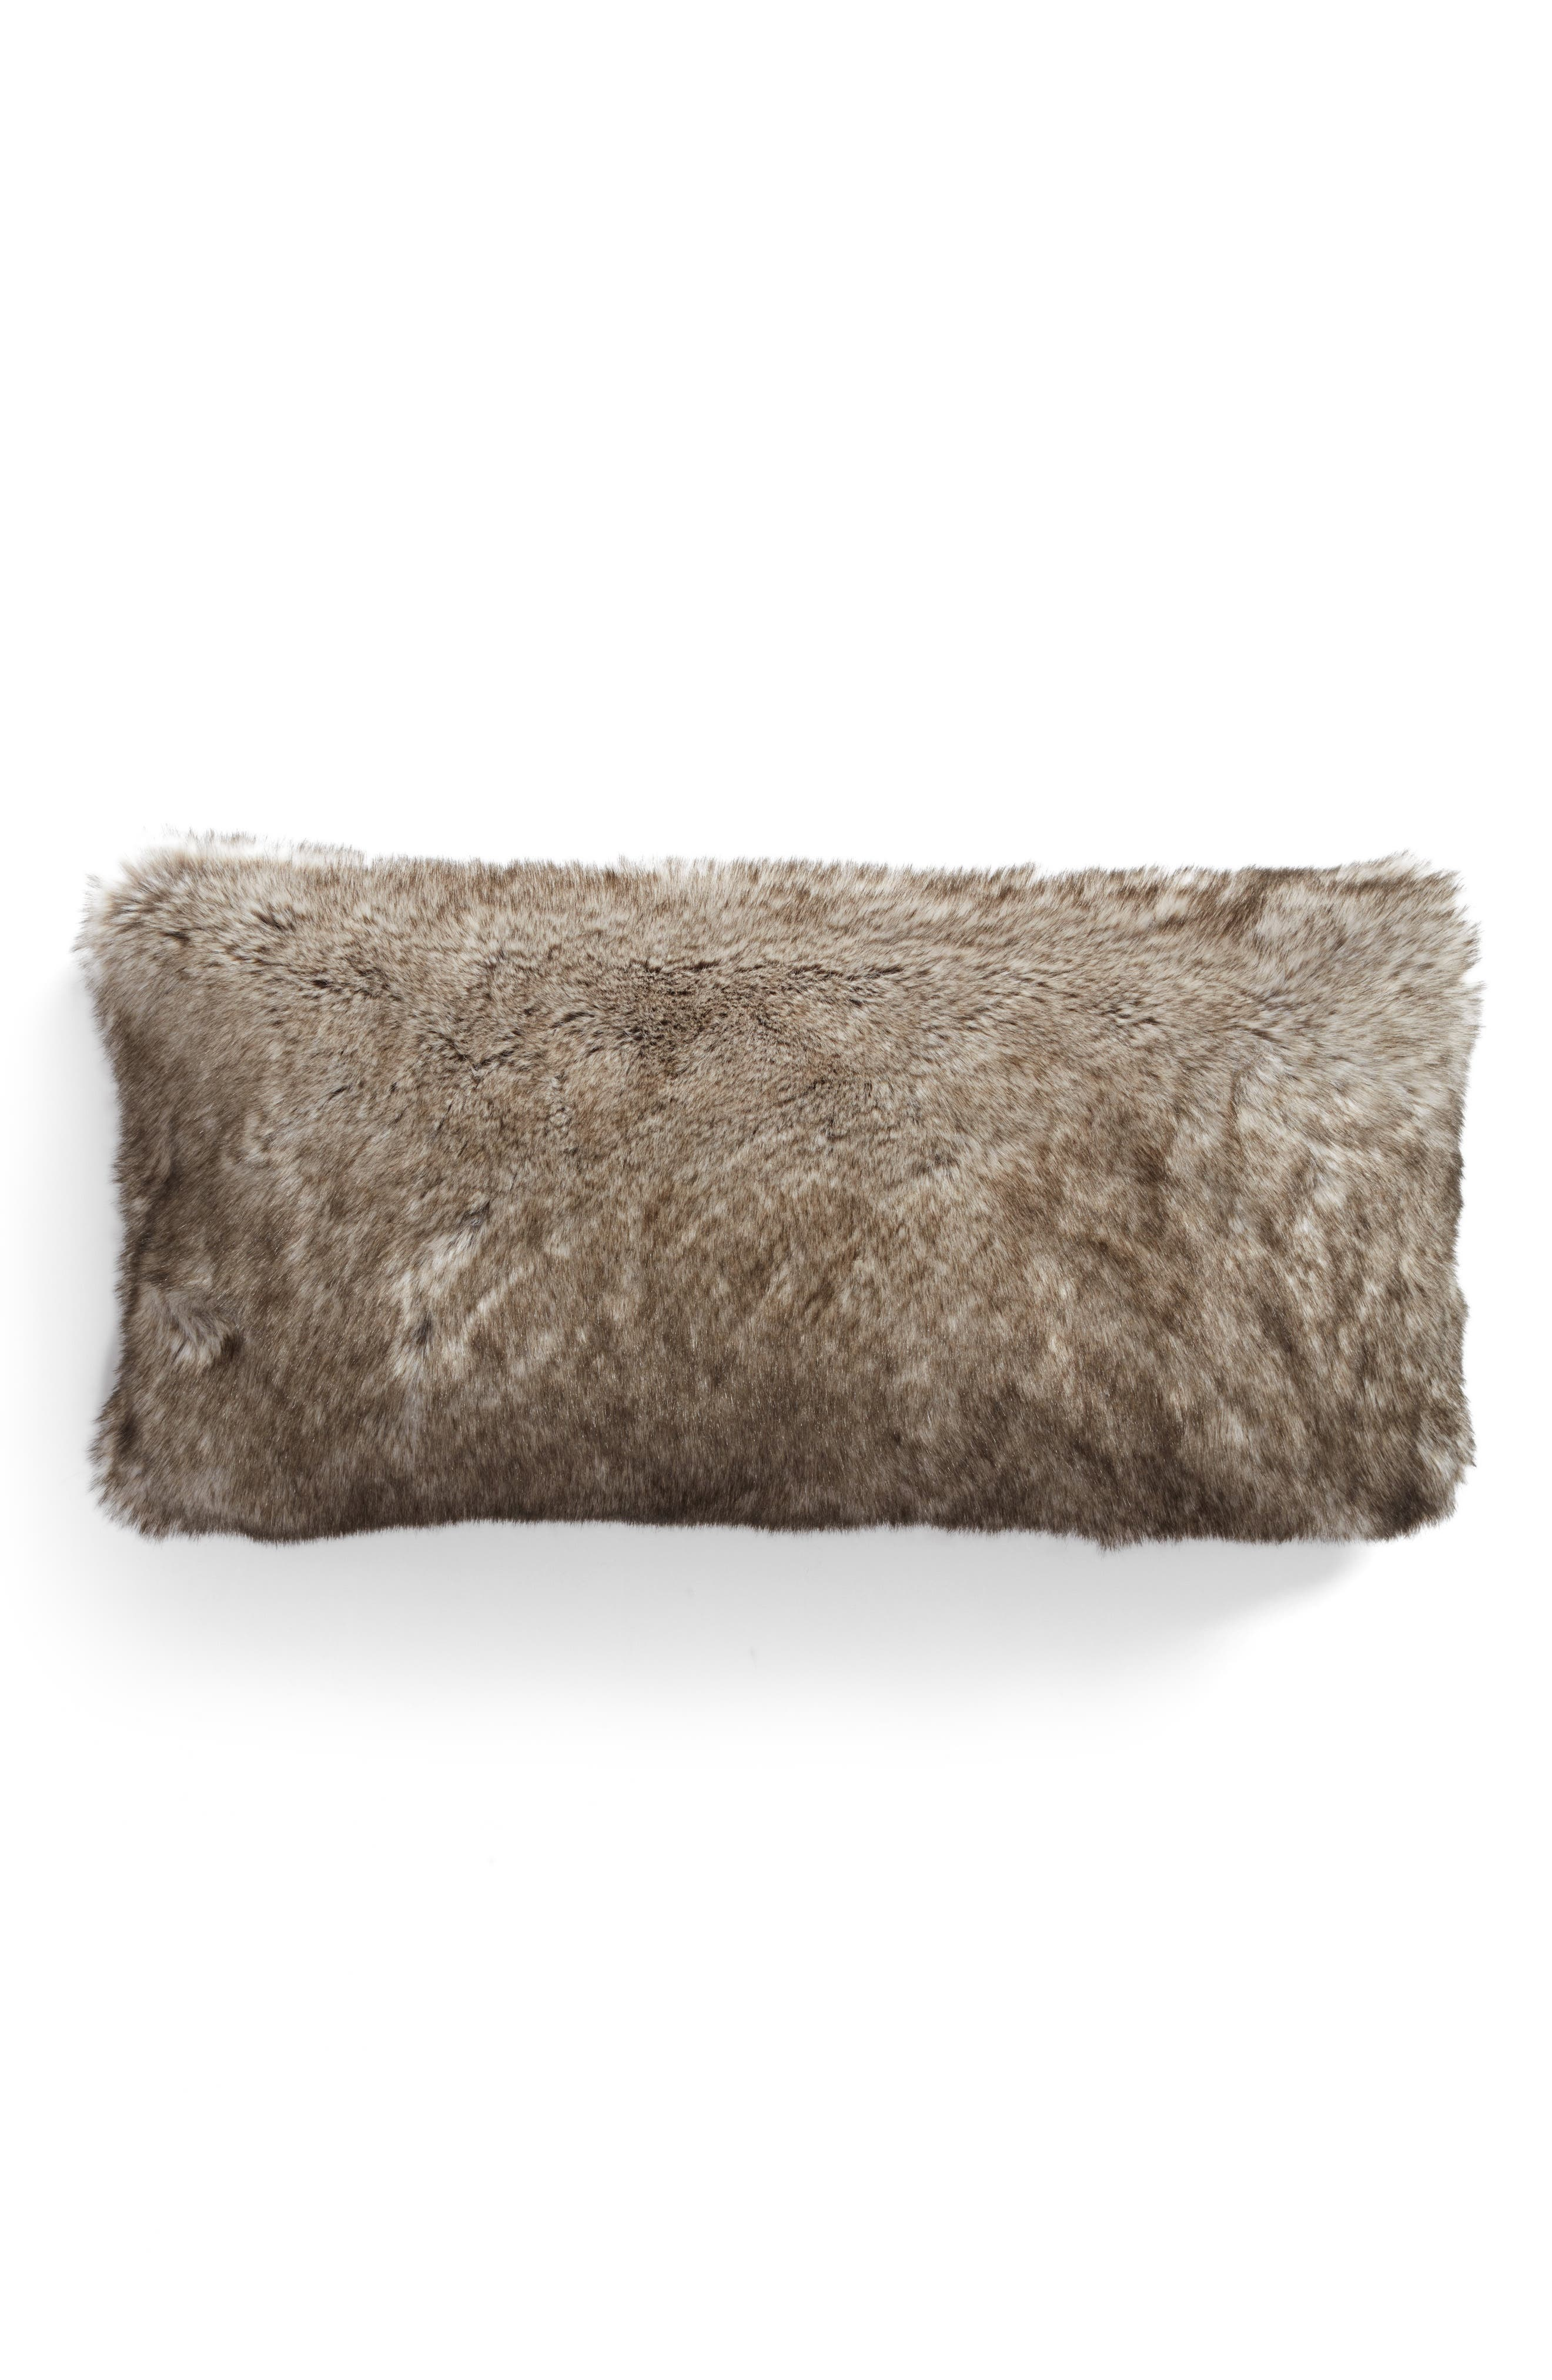 Cuddle Up Faux Fur Accent Pillow,                         Main,                         color, New Natural Tipped